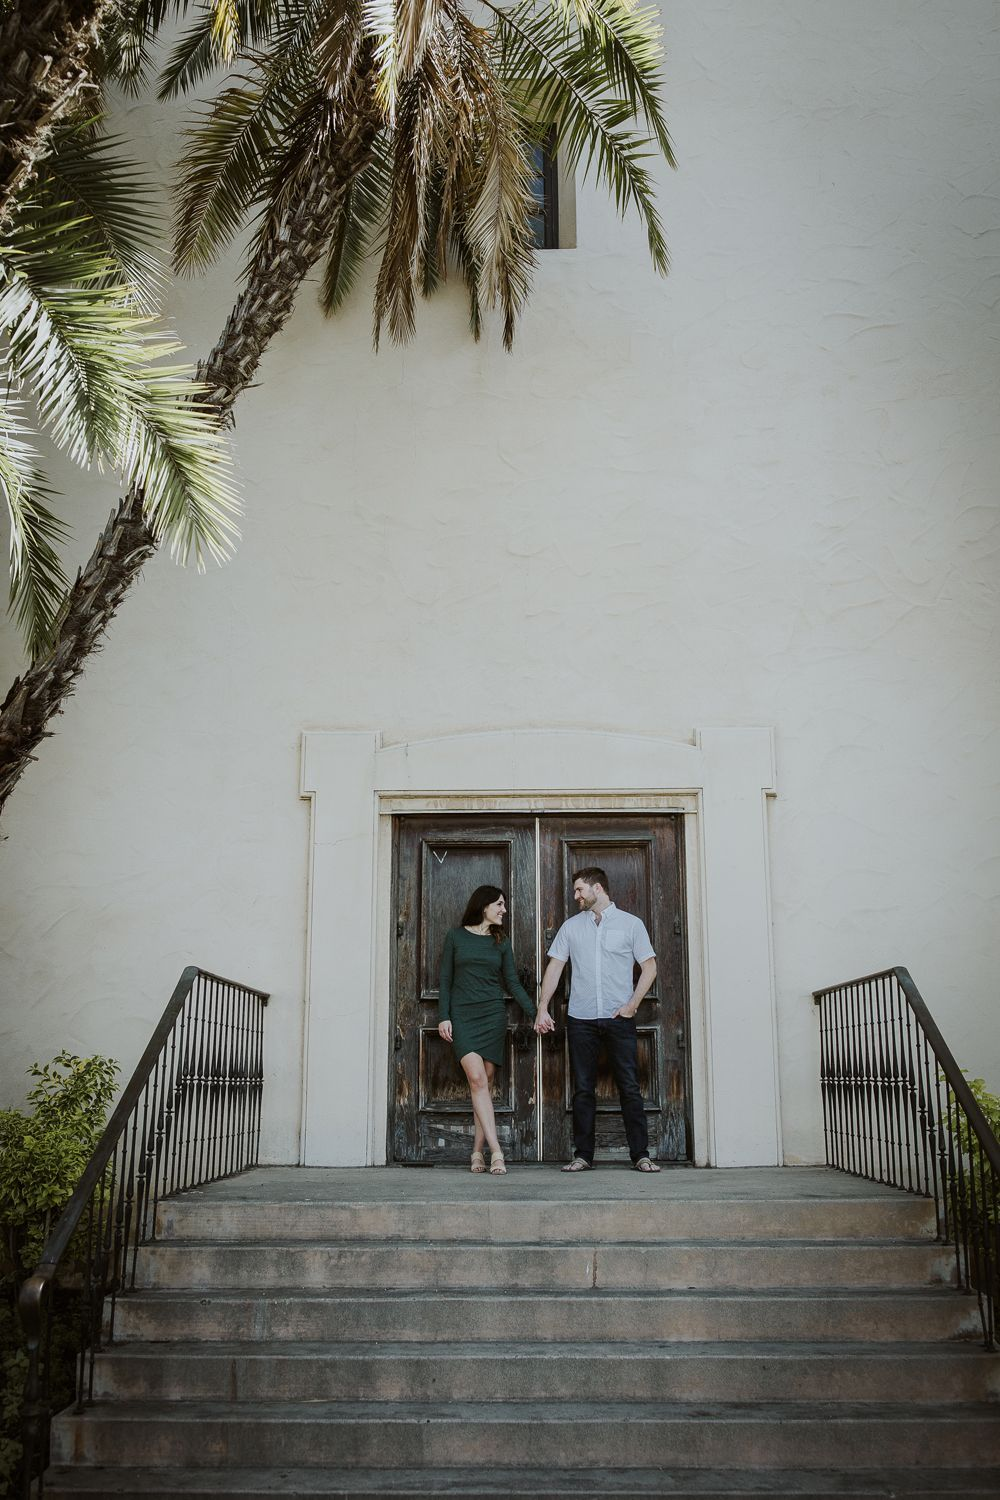 Beach + Cactus Garden Engagement Photos –  Couple goals with this engaged couple during their engagement photo session. We shot this engagemen – #beac…